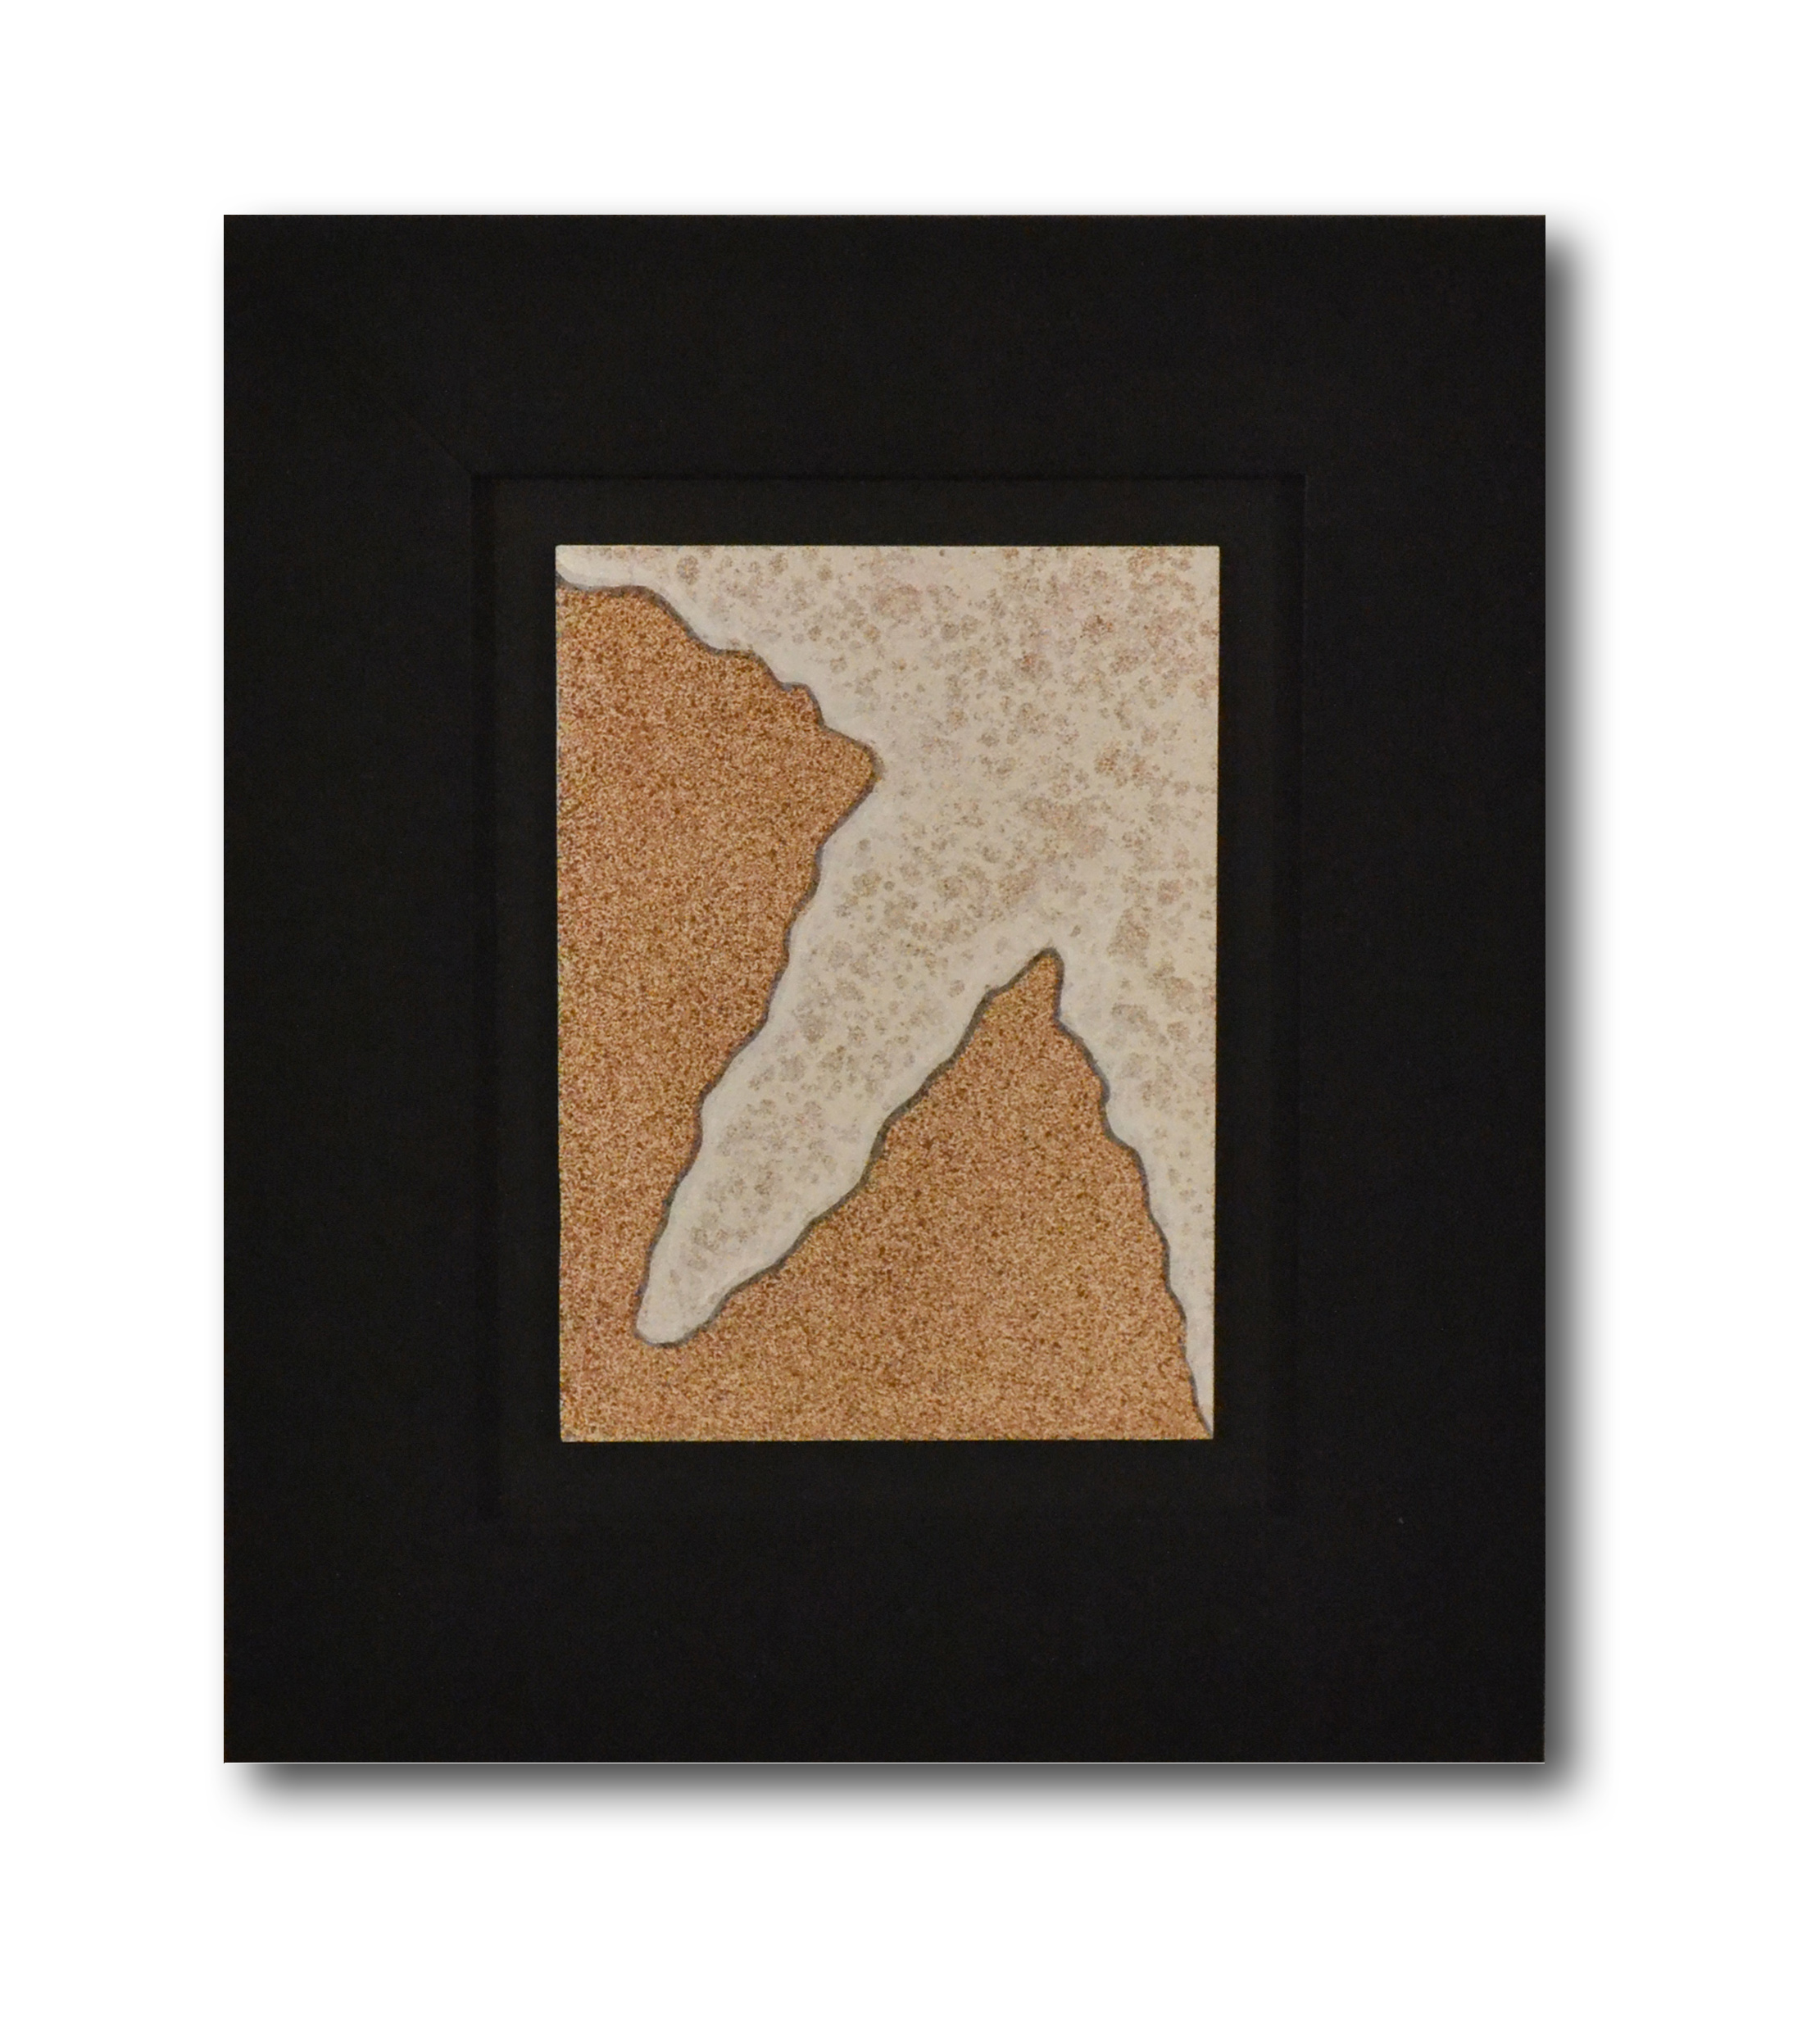 """Title: Dune 14 Artist: Mark Travers Year: 2011 Medium: Oil and acrylic on panel Size: 12"""" x 14"""" (including frame)"""